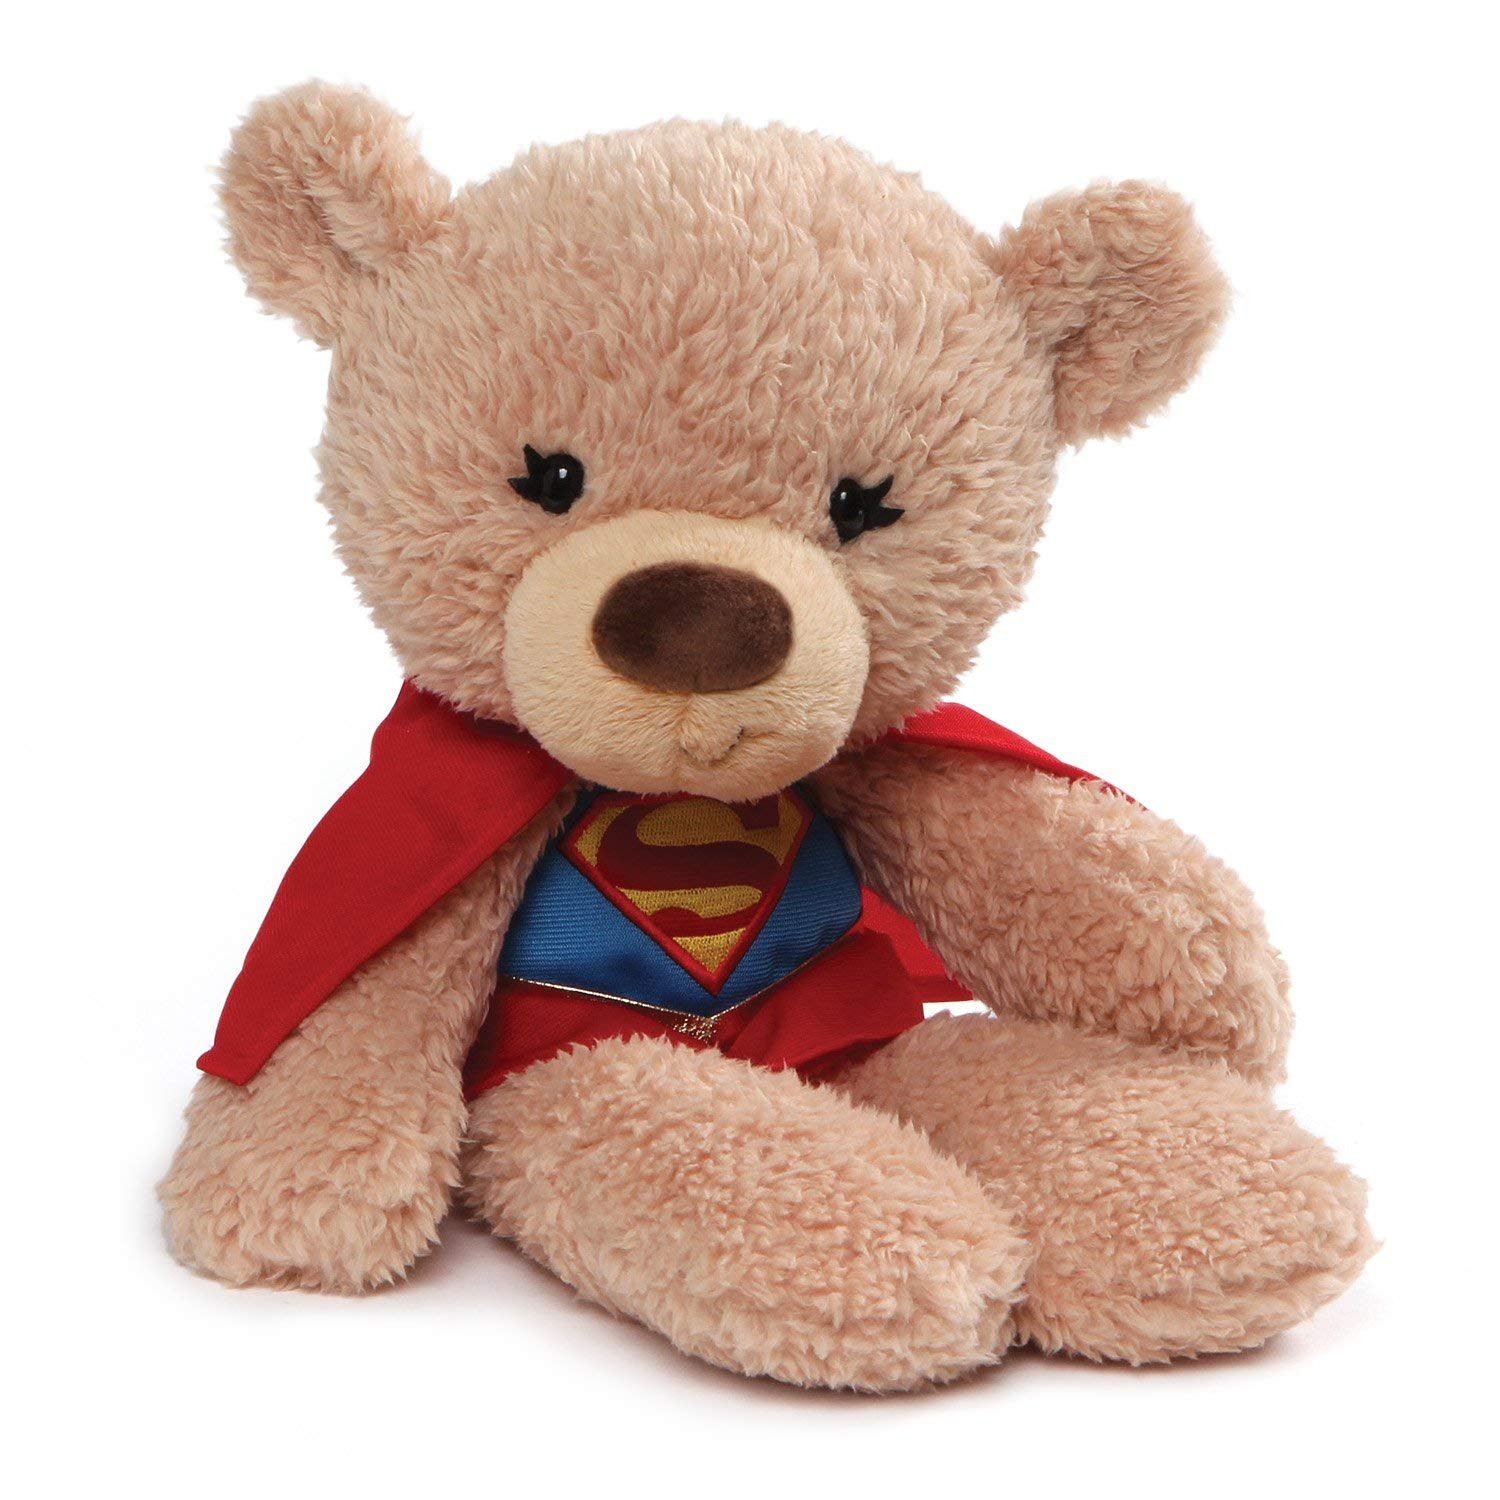 DC Comics Fuzzy 14 Super Girl Plush by Gund